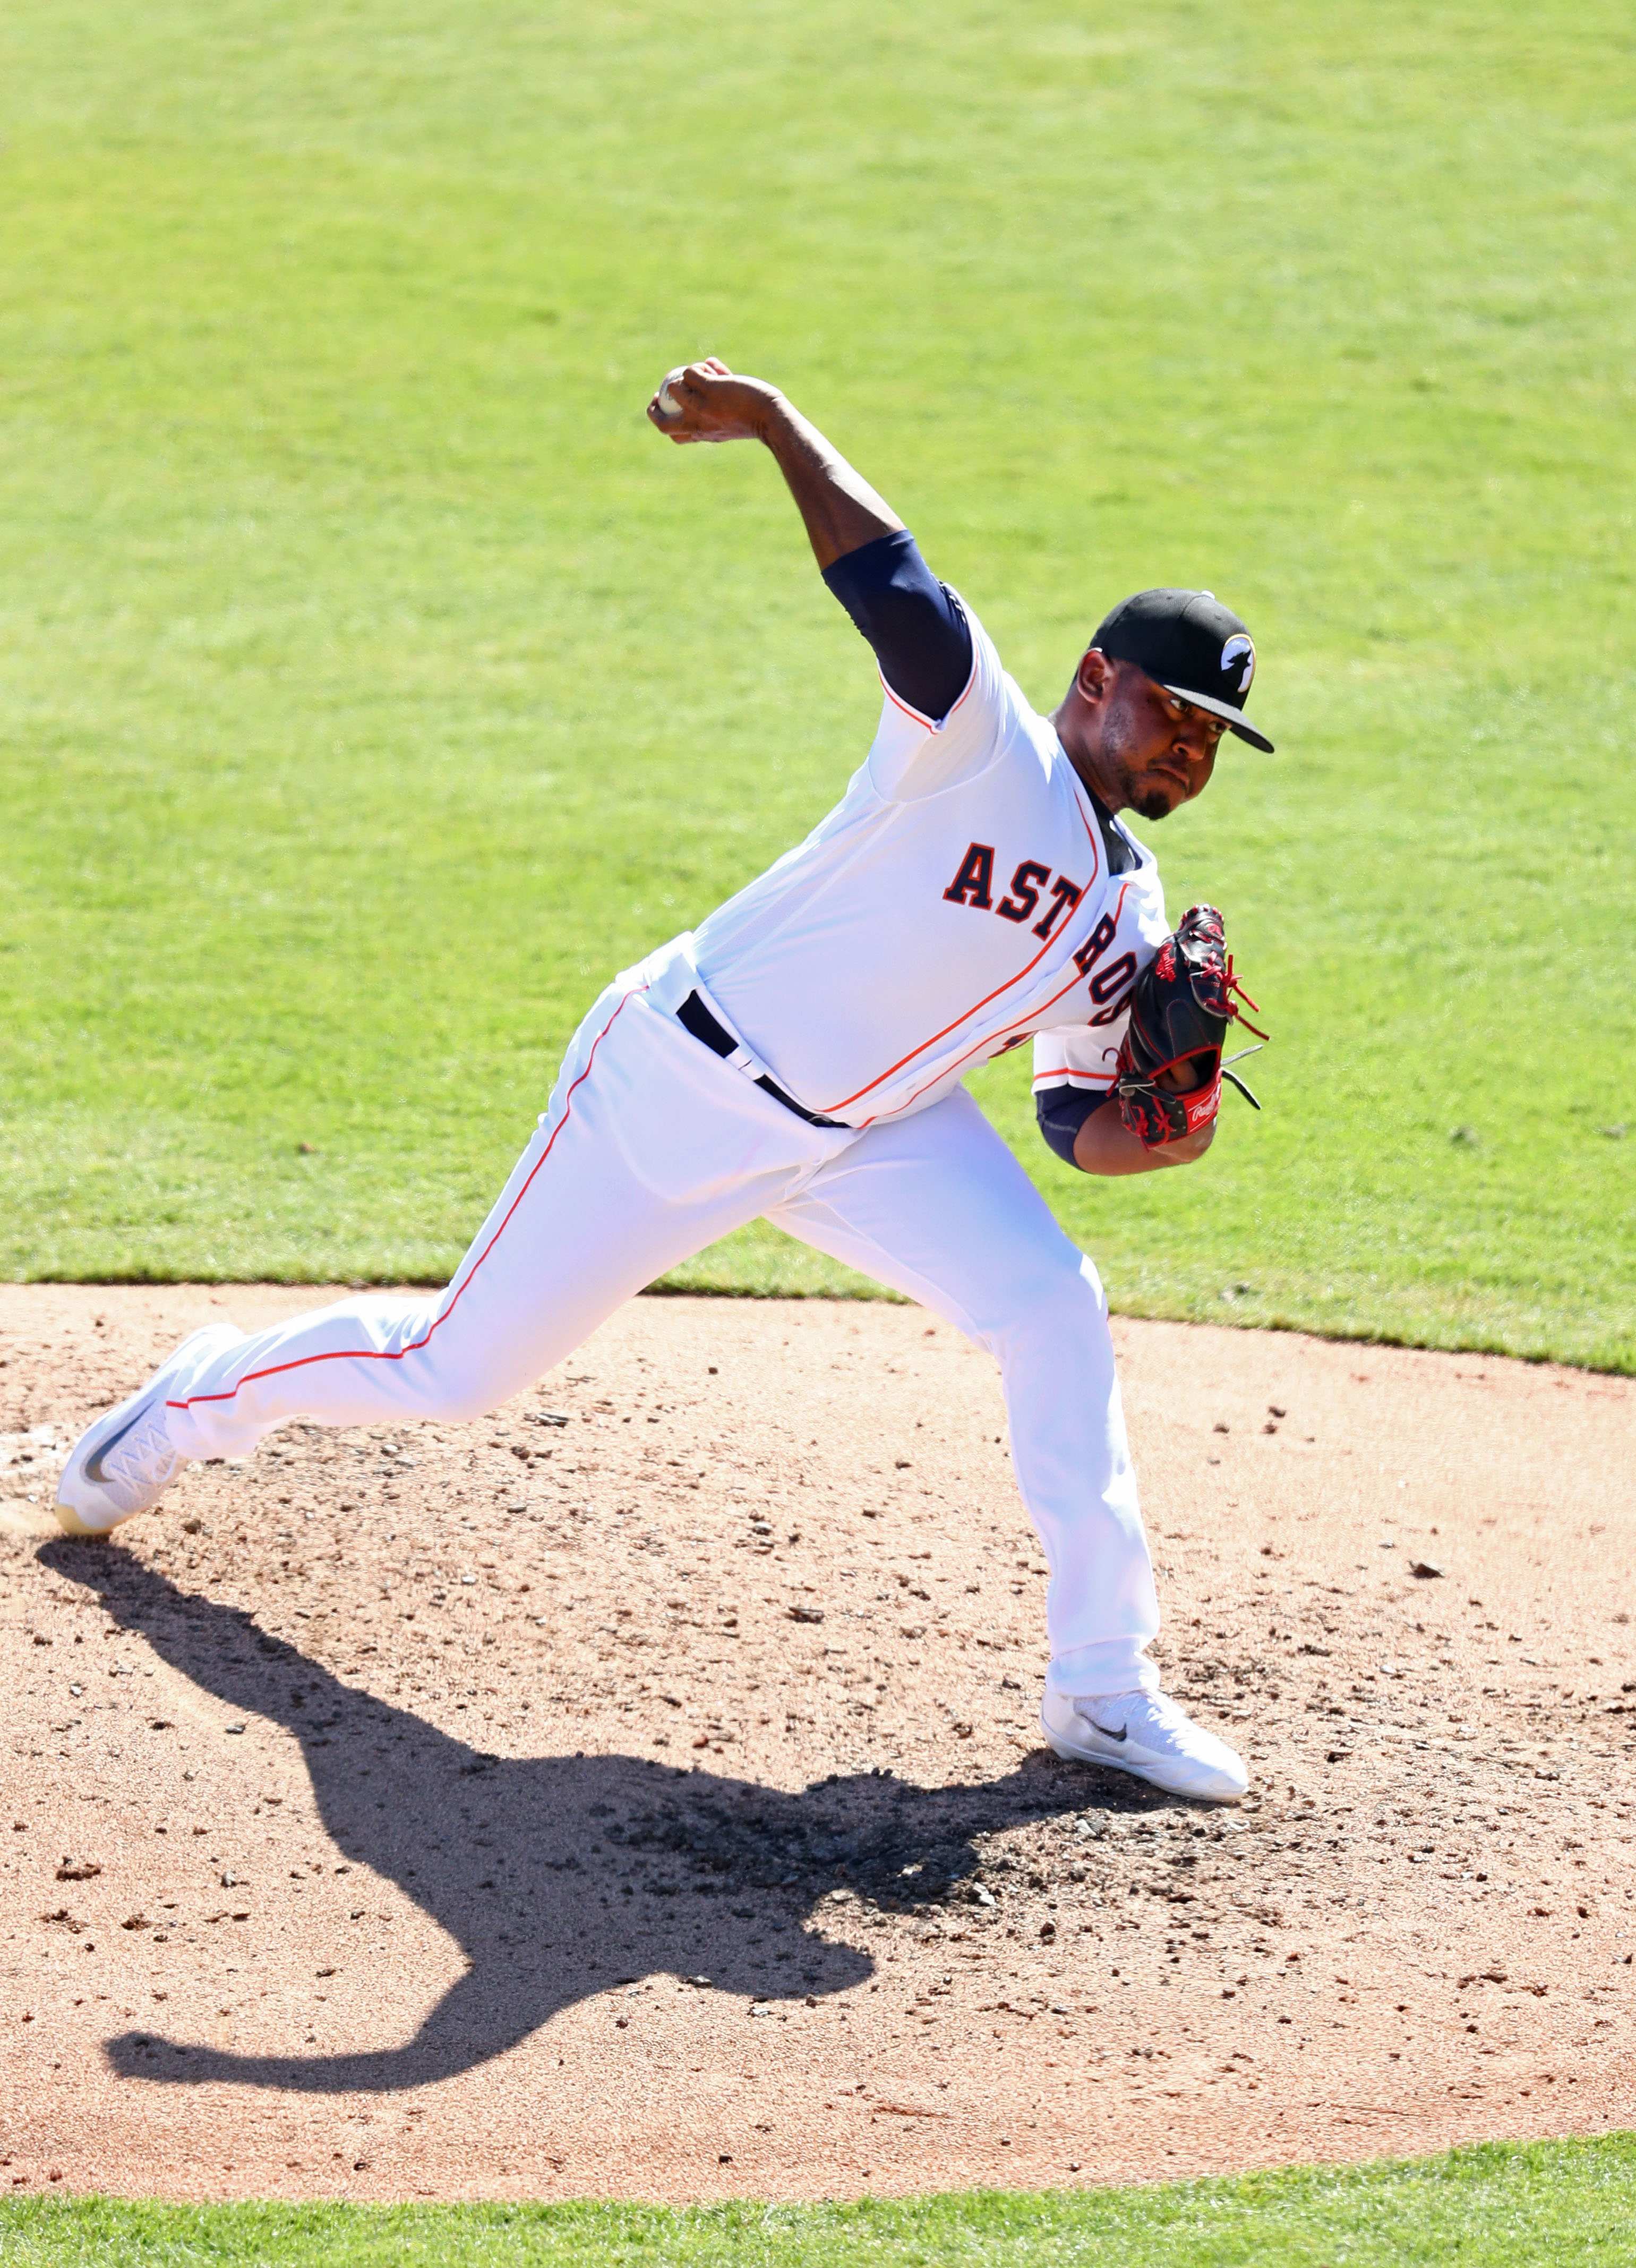 Rogelio Armenteros improved in week two of the AFL